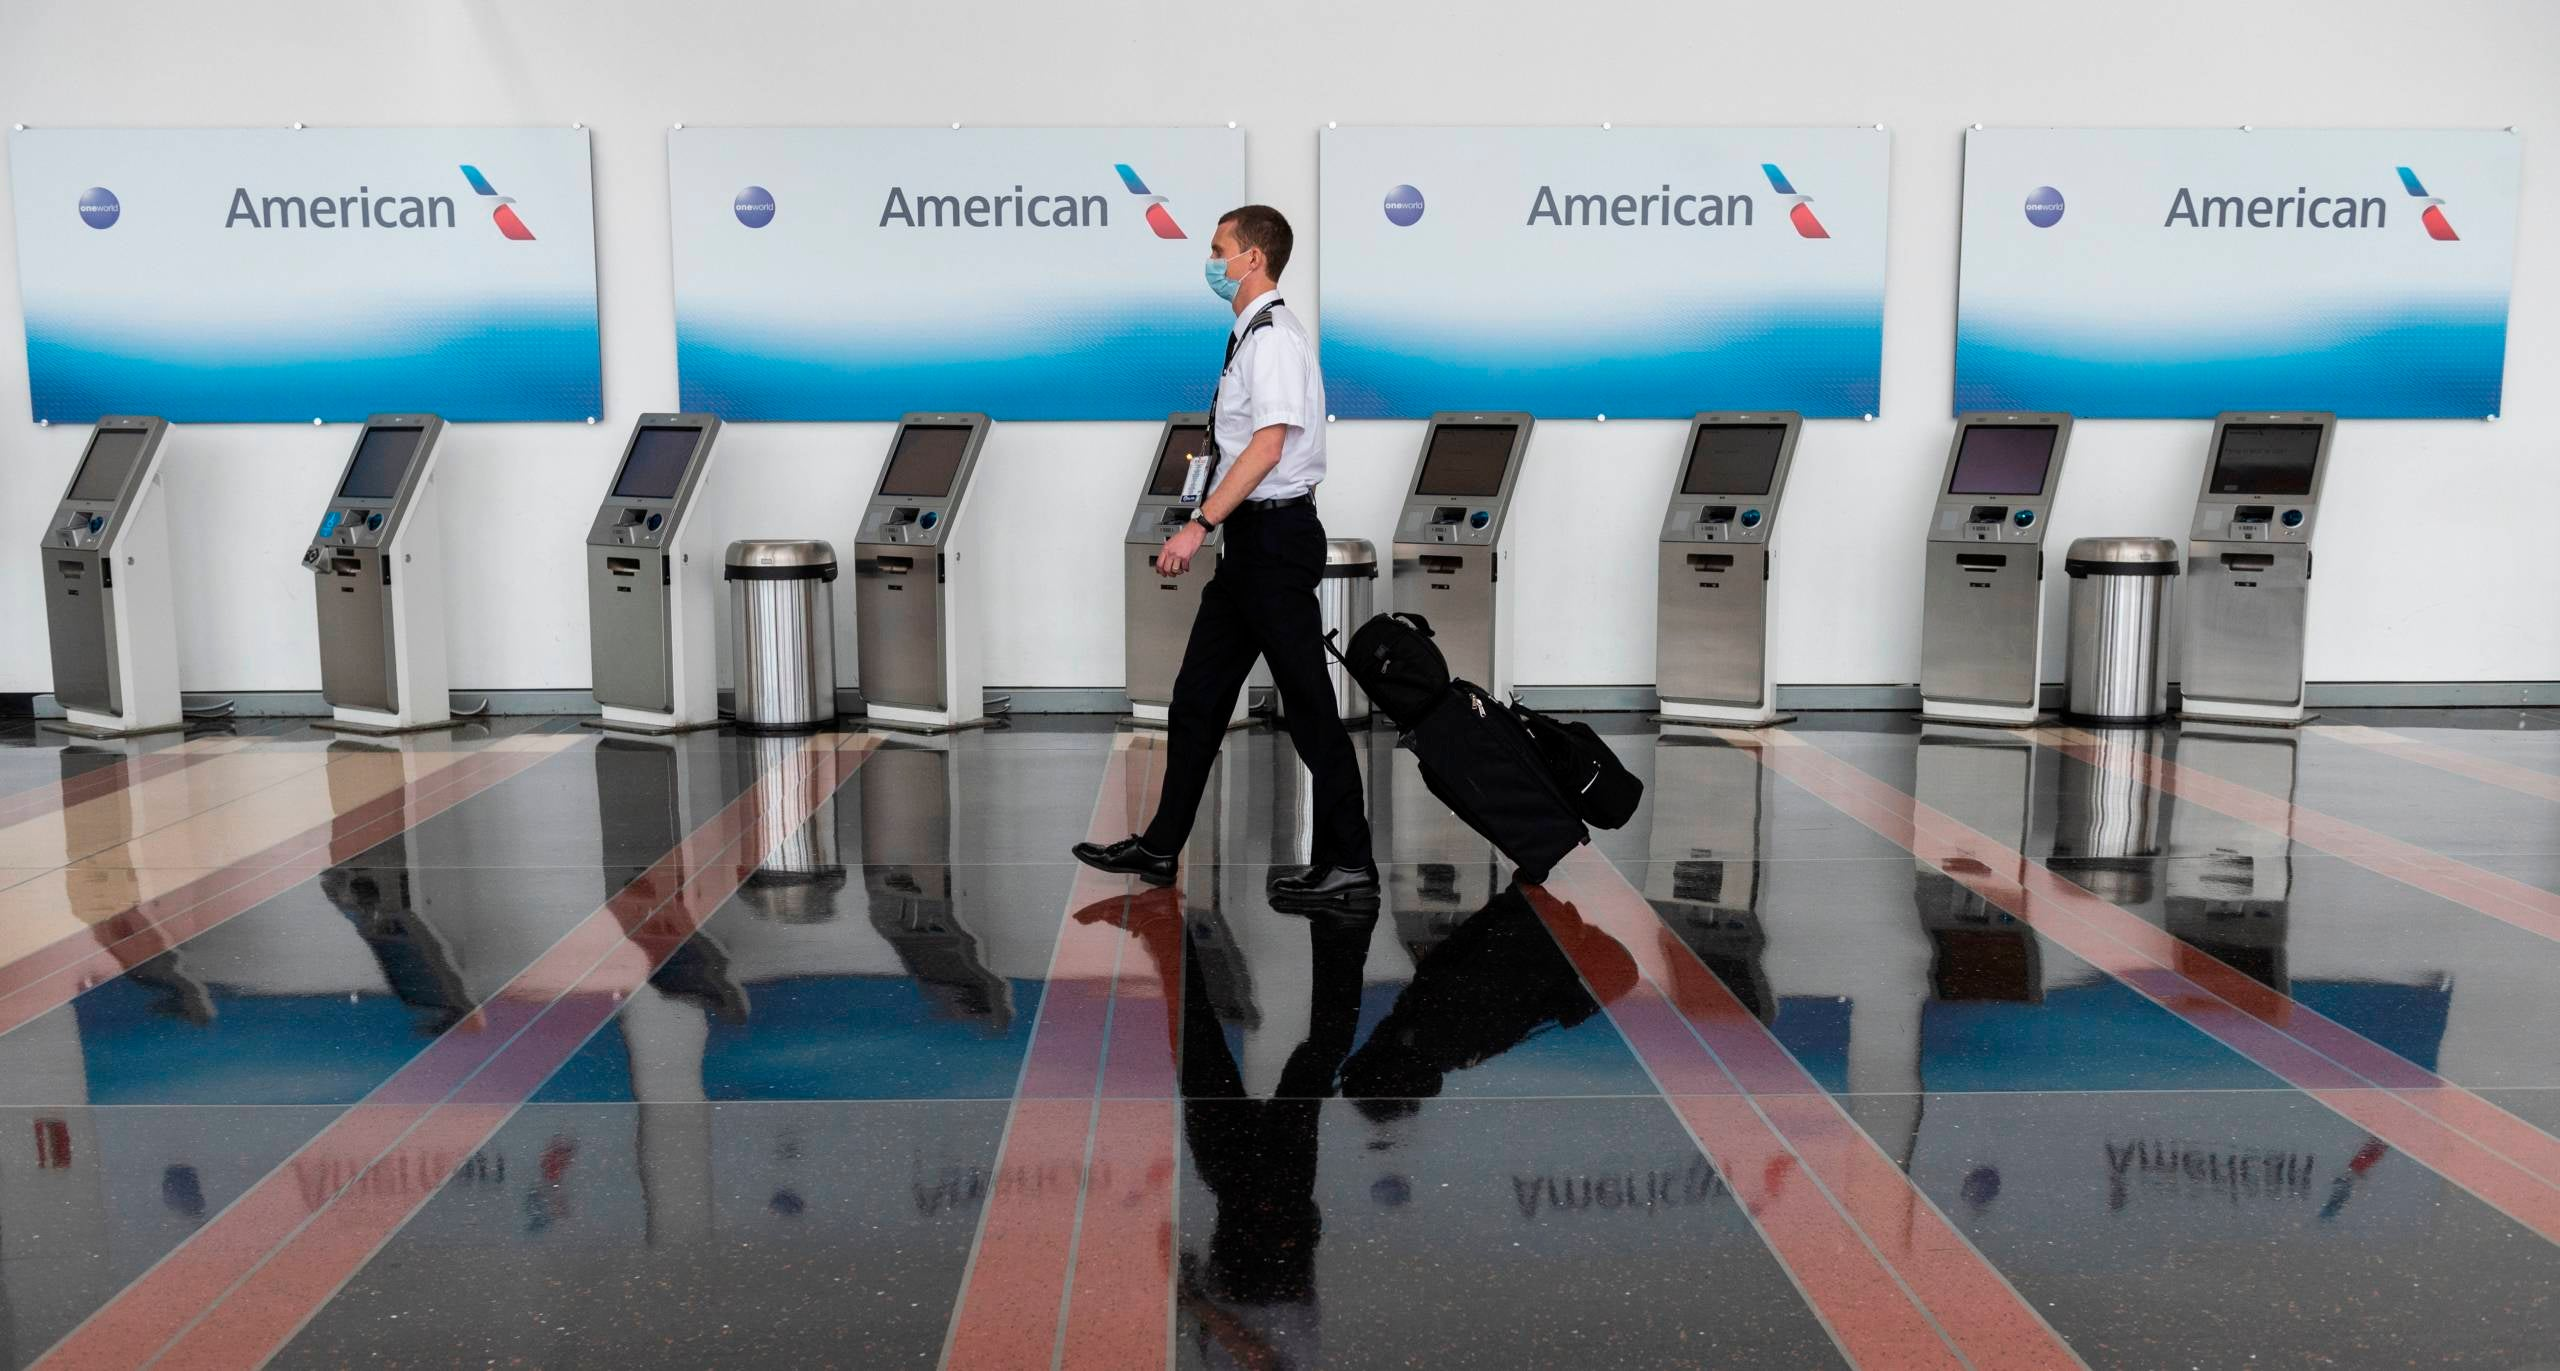 American Airlines pilots union wants the government to buy middle seats - The Points Guy